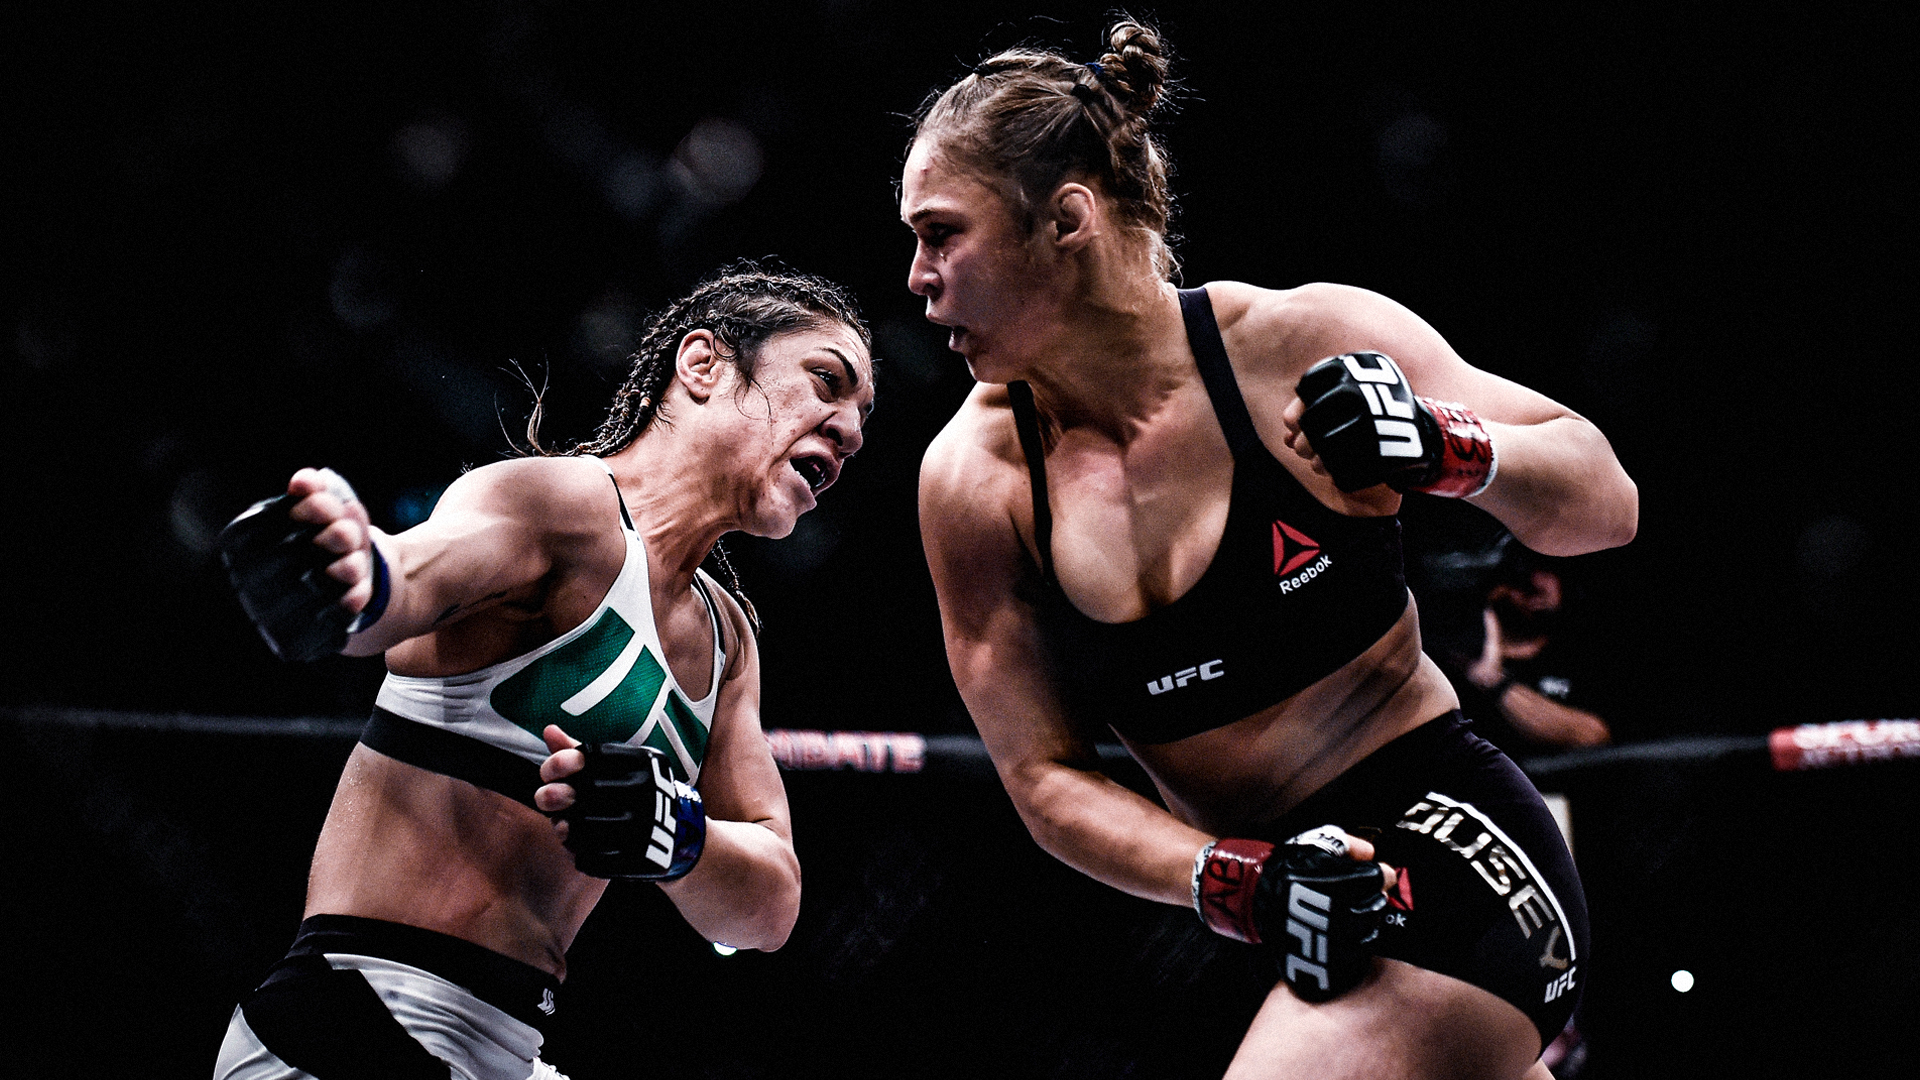 At £330,000, Ronda Rousey Is The Highest Earning MMA Fighter Per Strike Landed